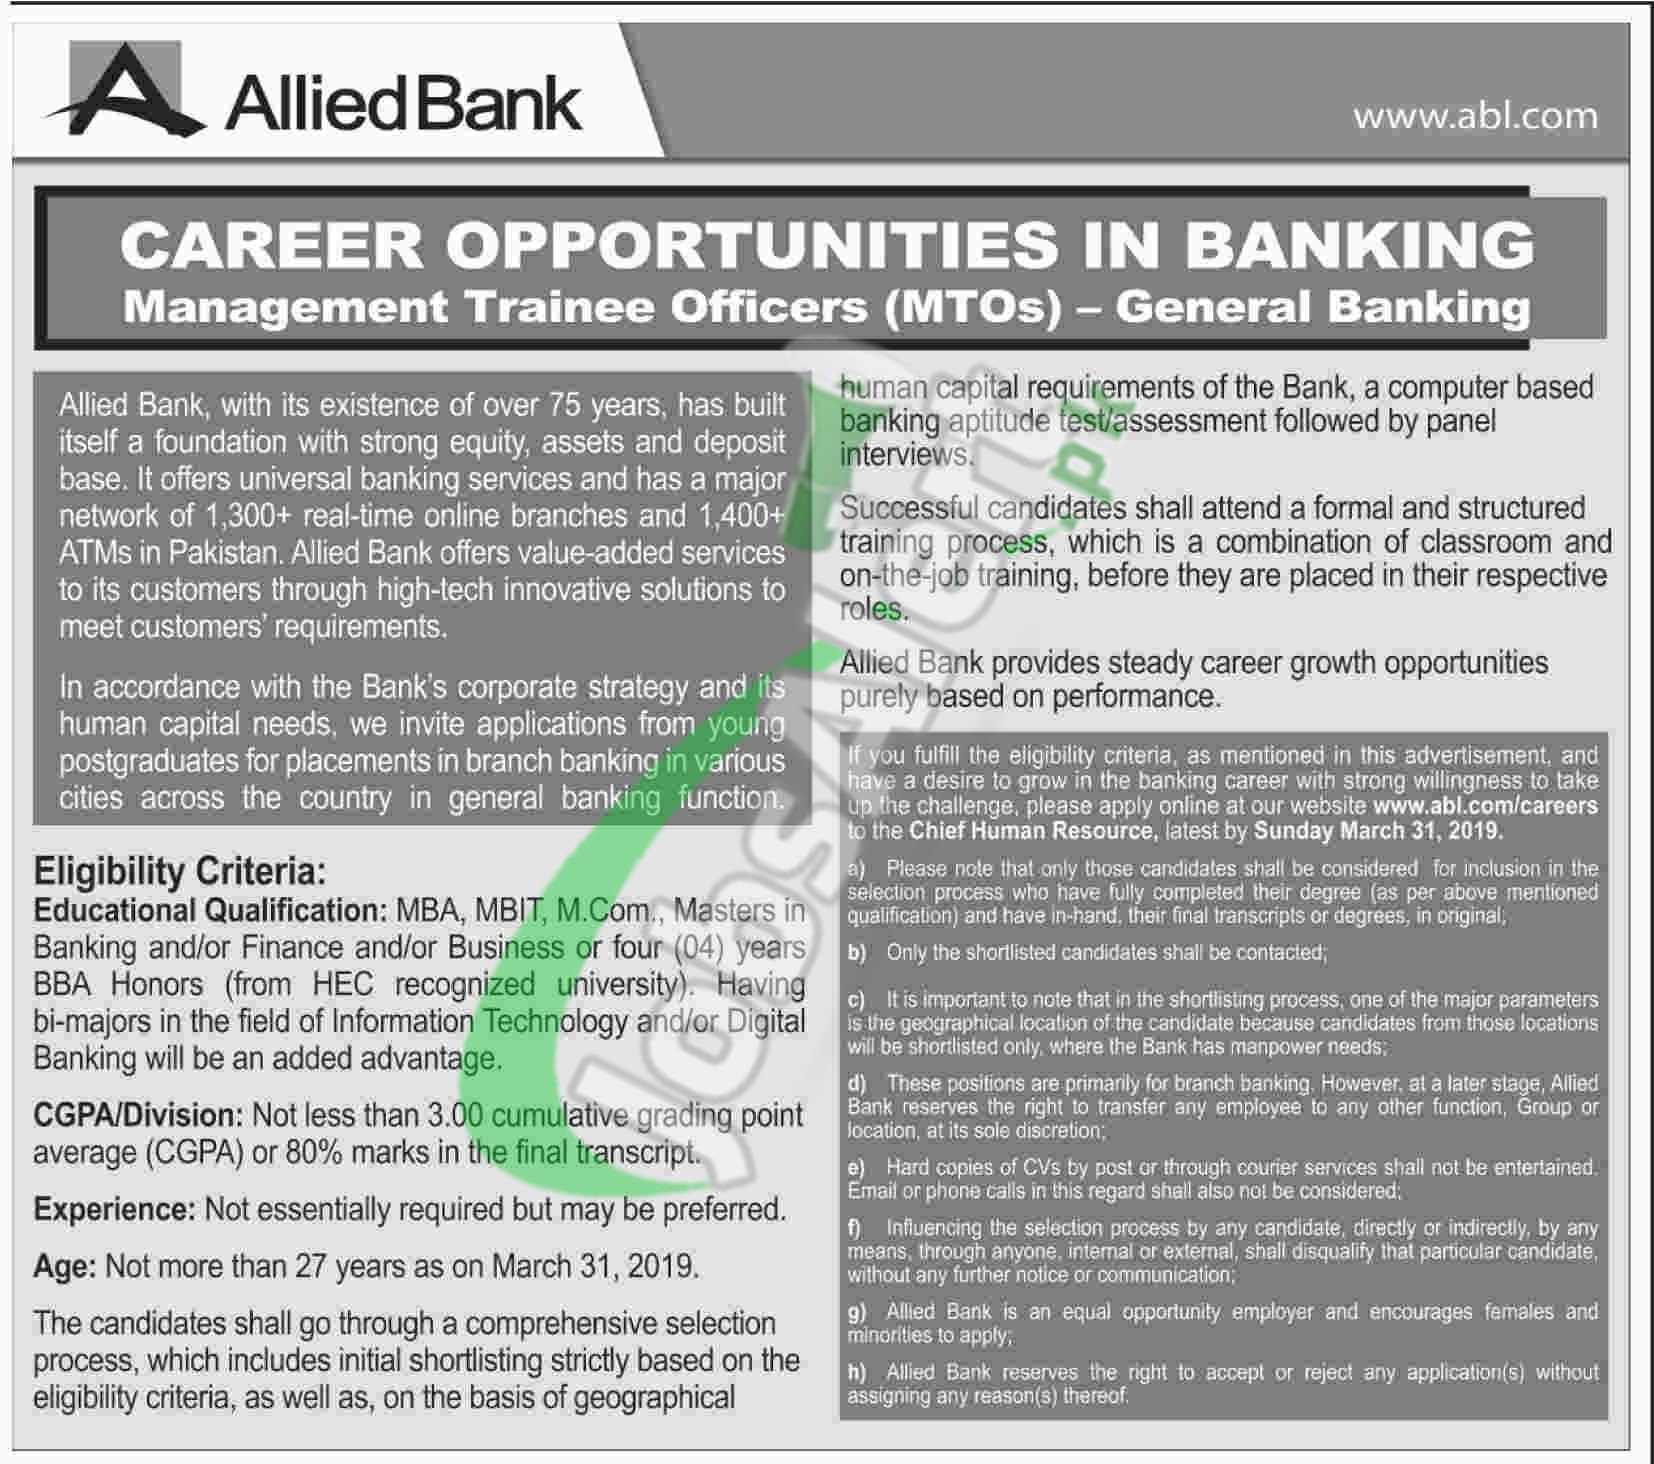 Allied Bank MTO Jobs 2019 Management Trainee Officers Salary